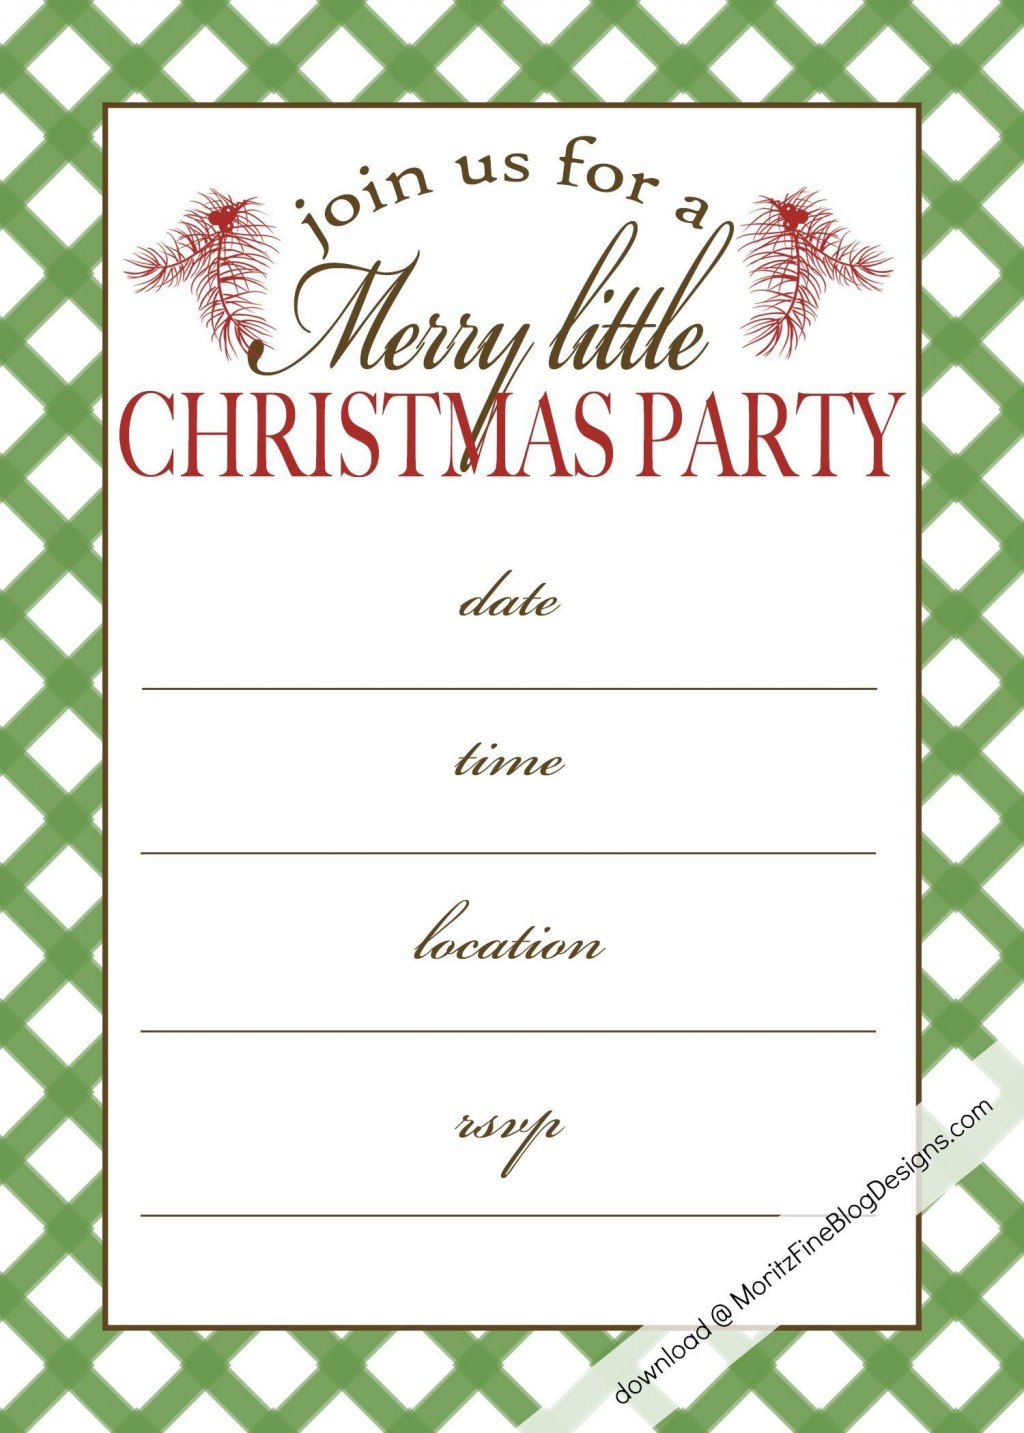 002 Awesome Xma Party Invite Template Free Photo  Holiday Invitation Word Download ChristmaLarge